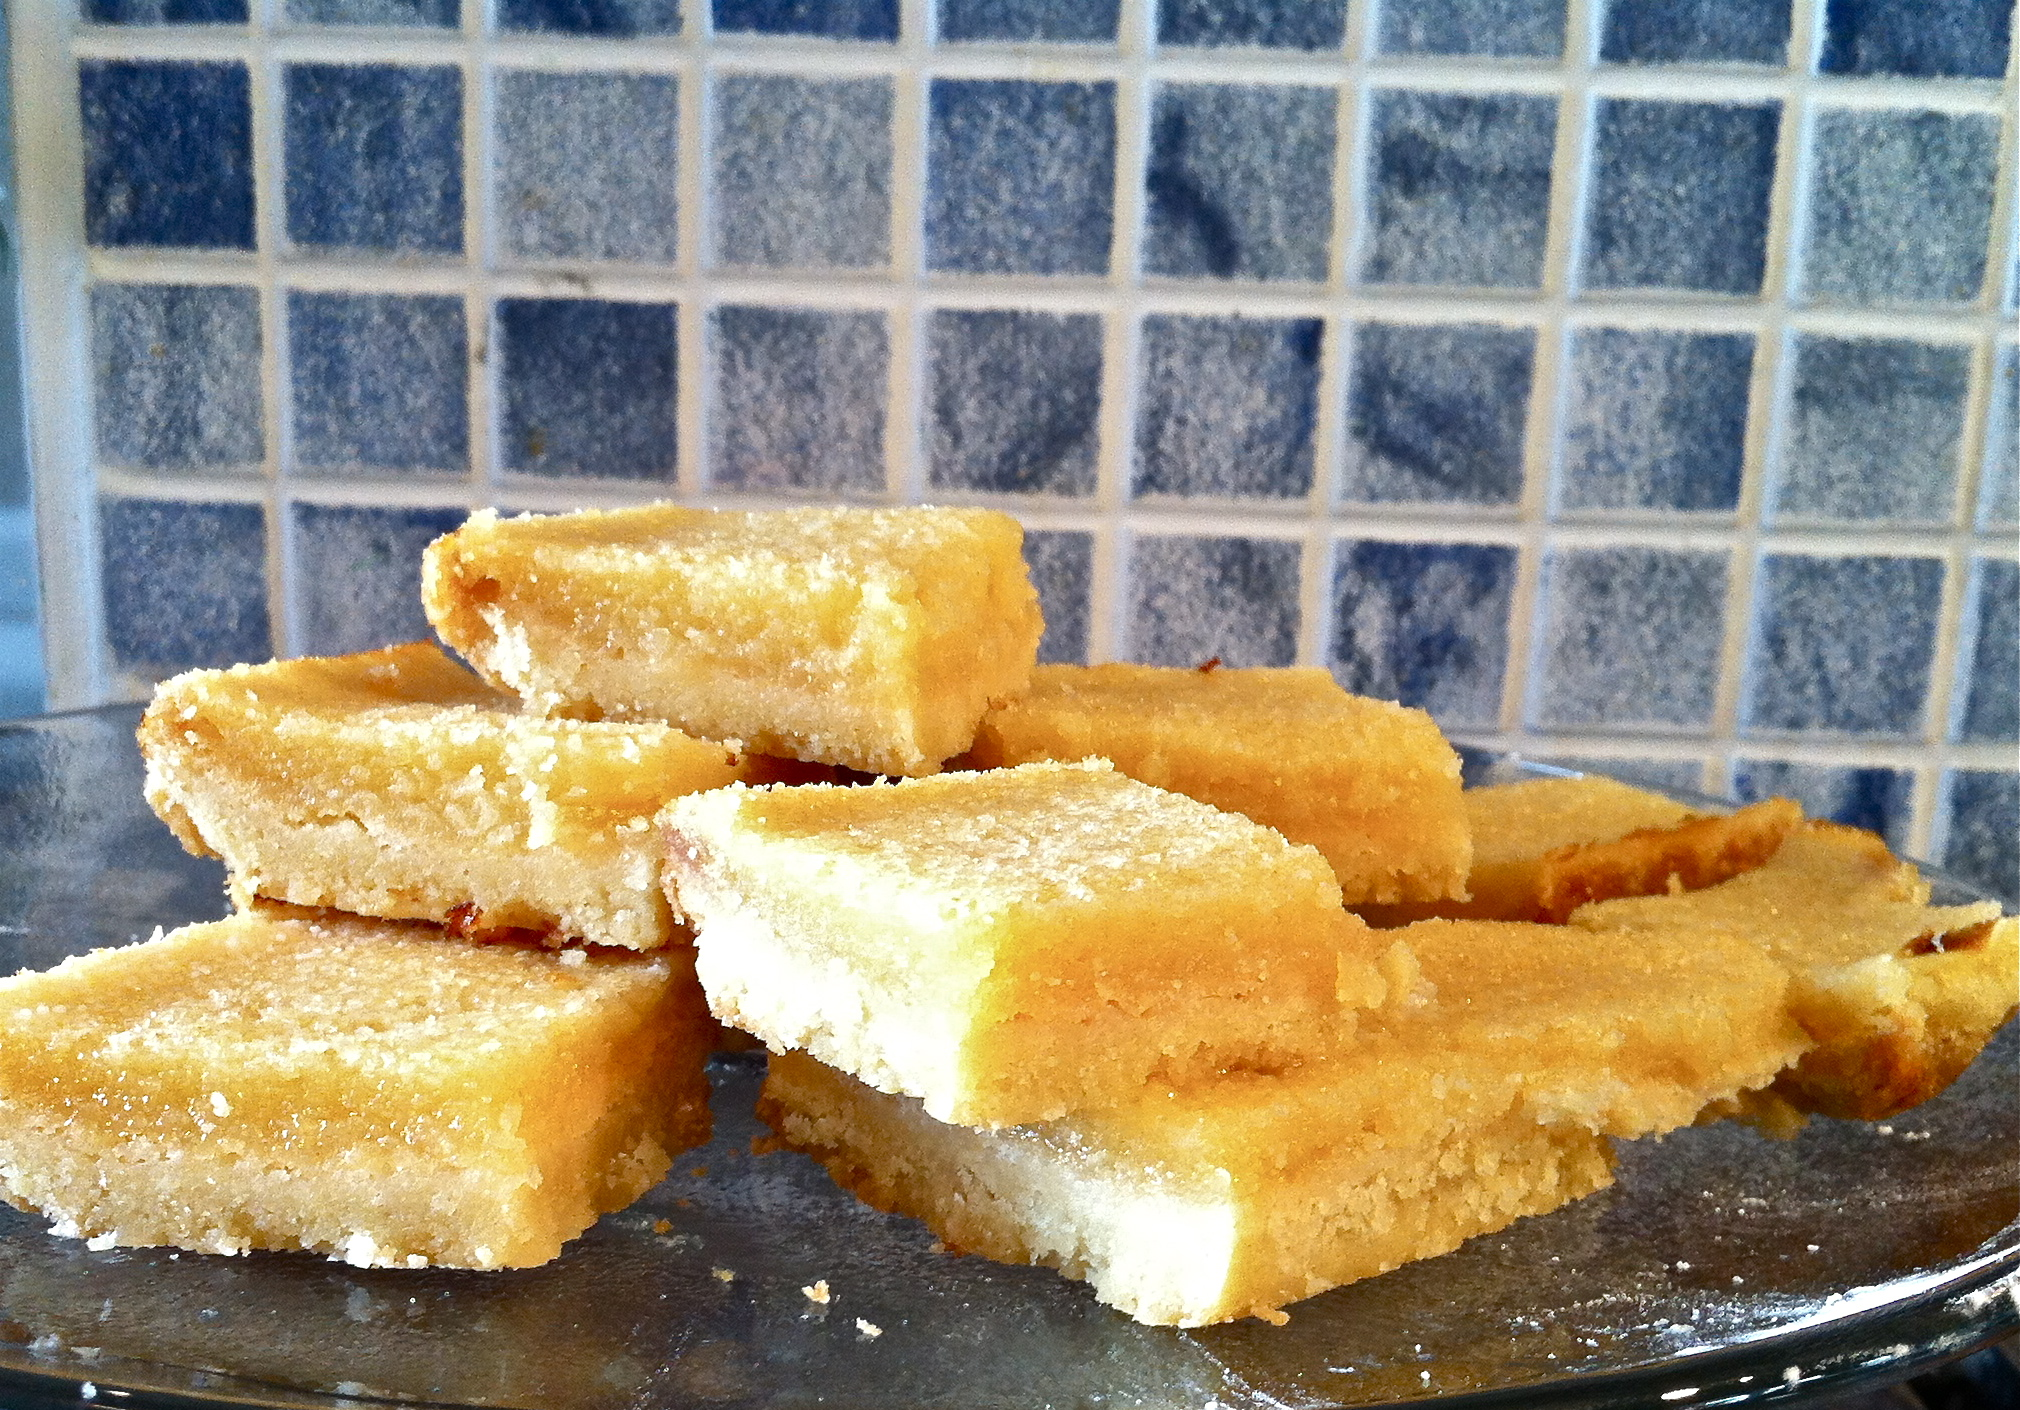 When life gives you lemons, make Lemon Squares